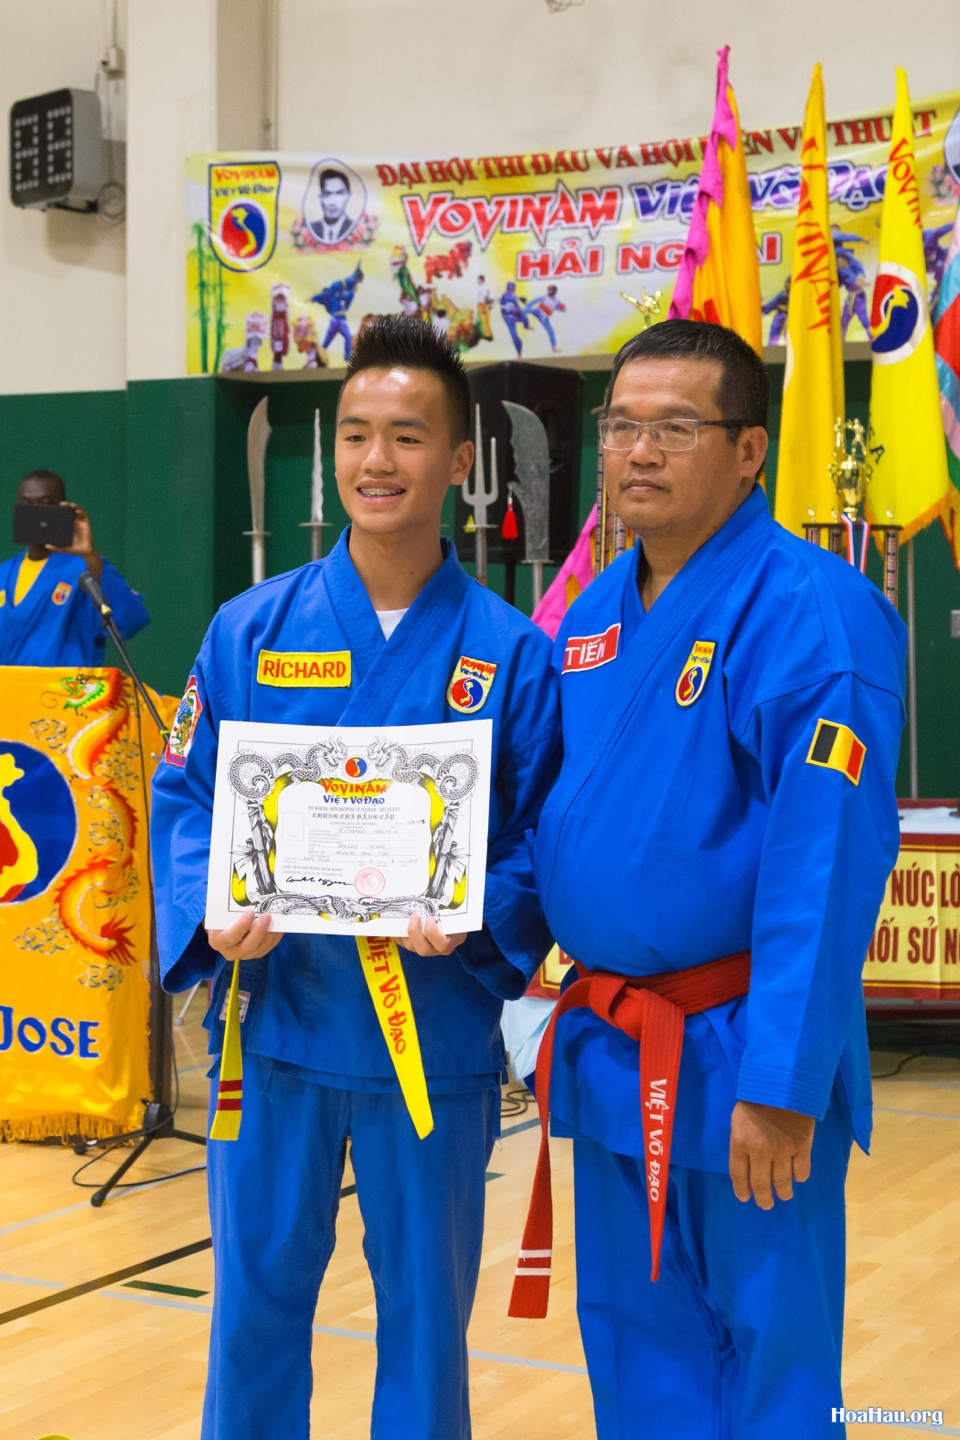 Vovinam Viet Vo Dao - 13th Annual Tournament - Yerba Buena High School - Image 026